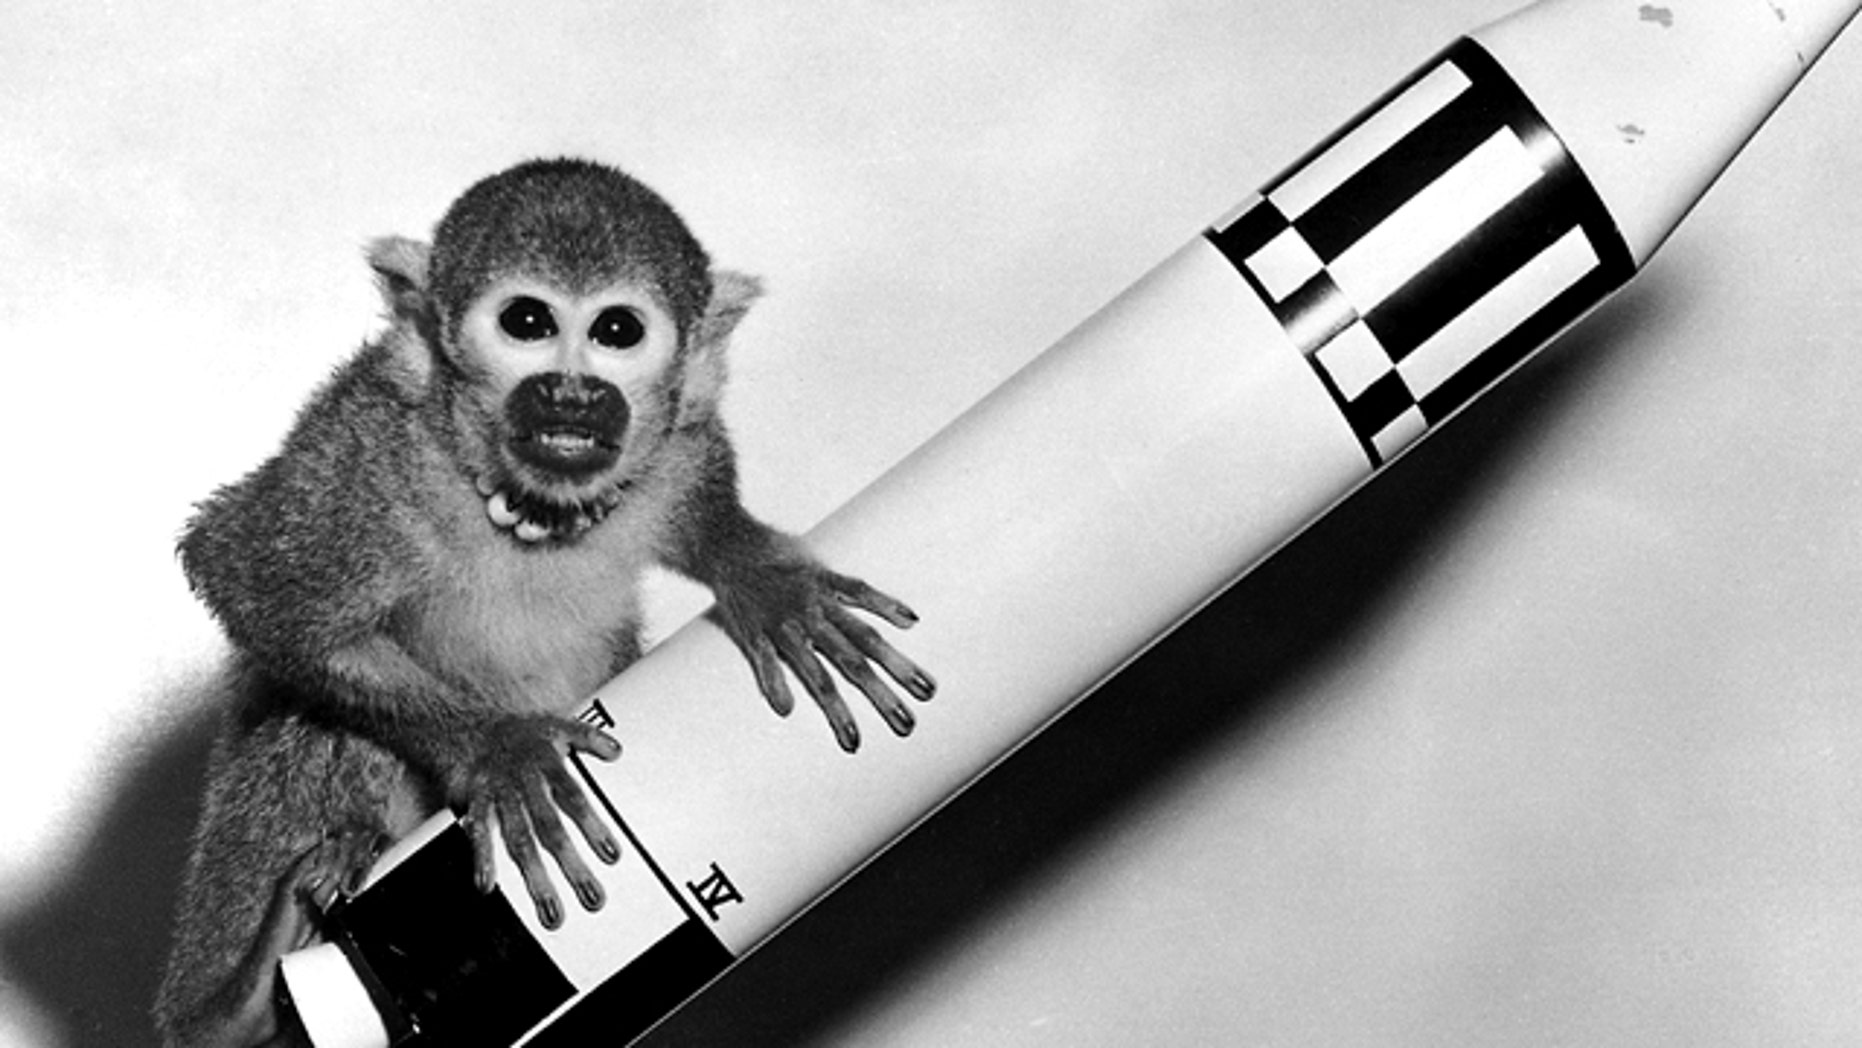 May 29, 1959: Monkey Baker, sent into space on the Jupiter AM-18 rocket, poses on a model of the vehicle.